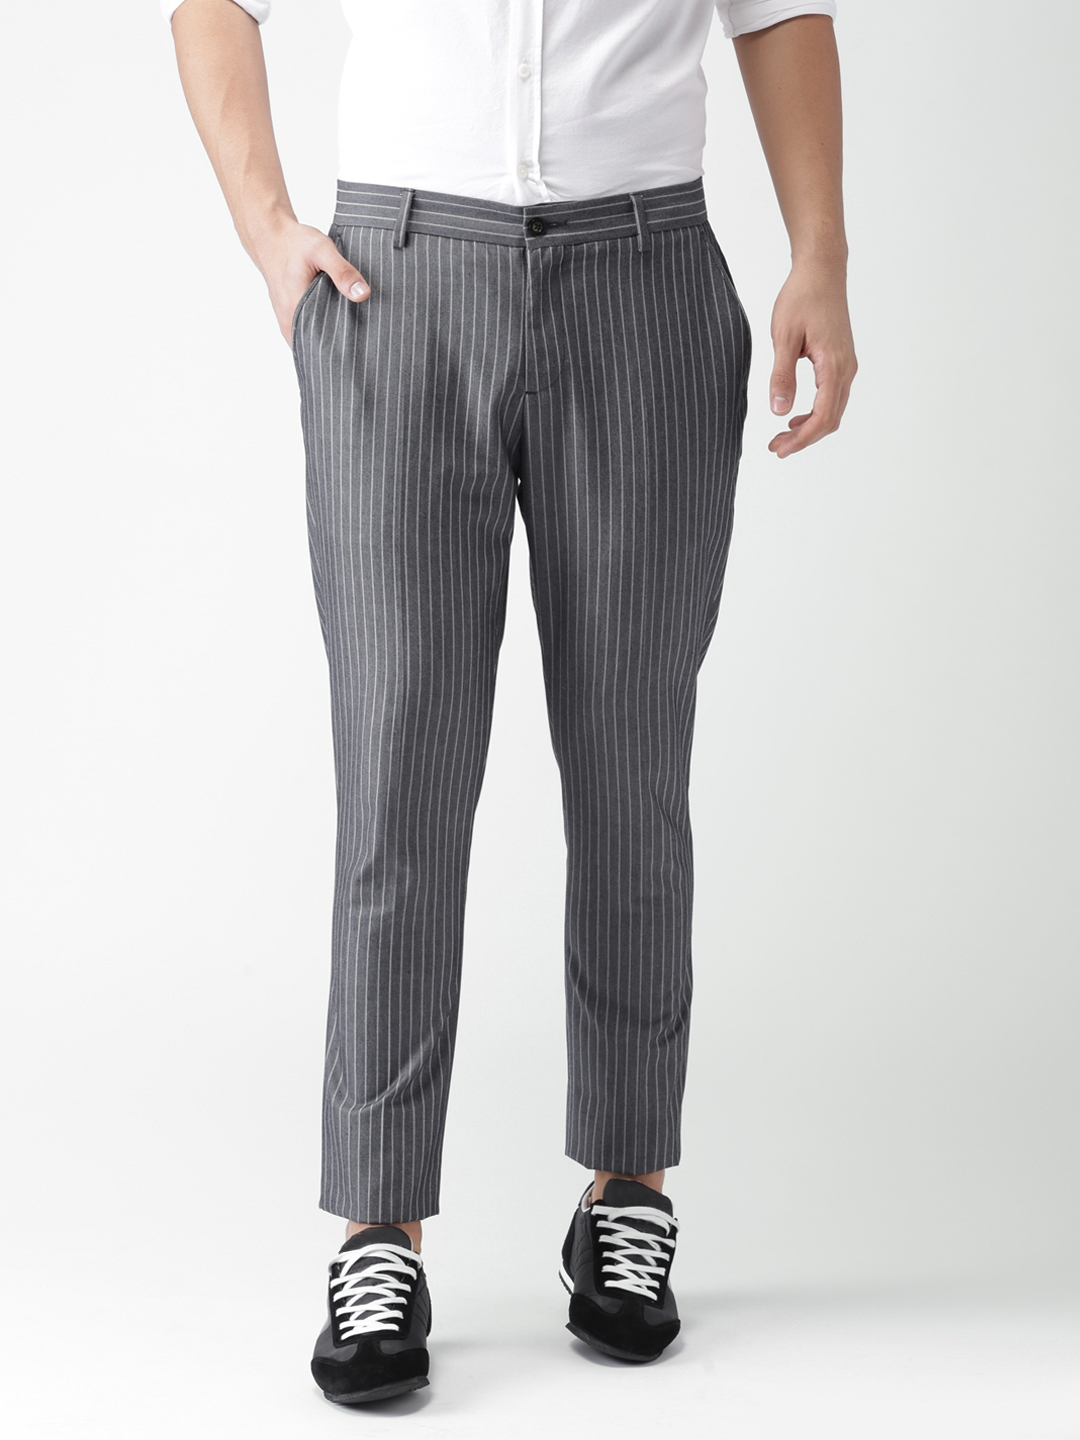 cbc33658d7 Buy INVICTUS Men Slim Fit Striped Smart Casual Trousers - Trousers ...